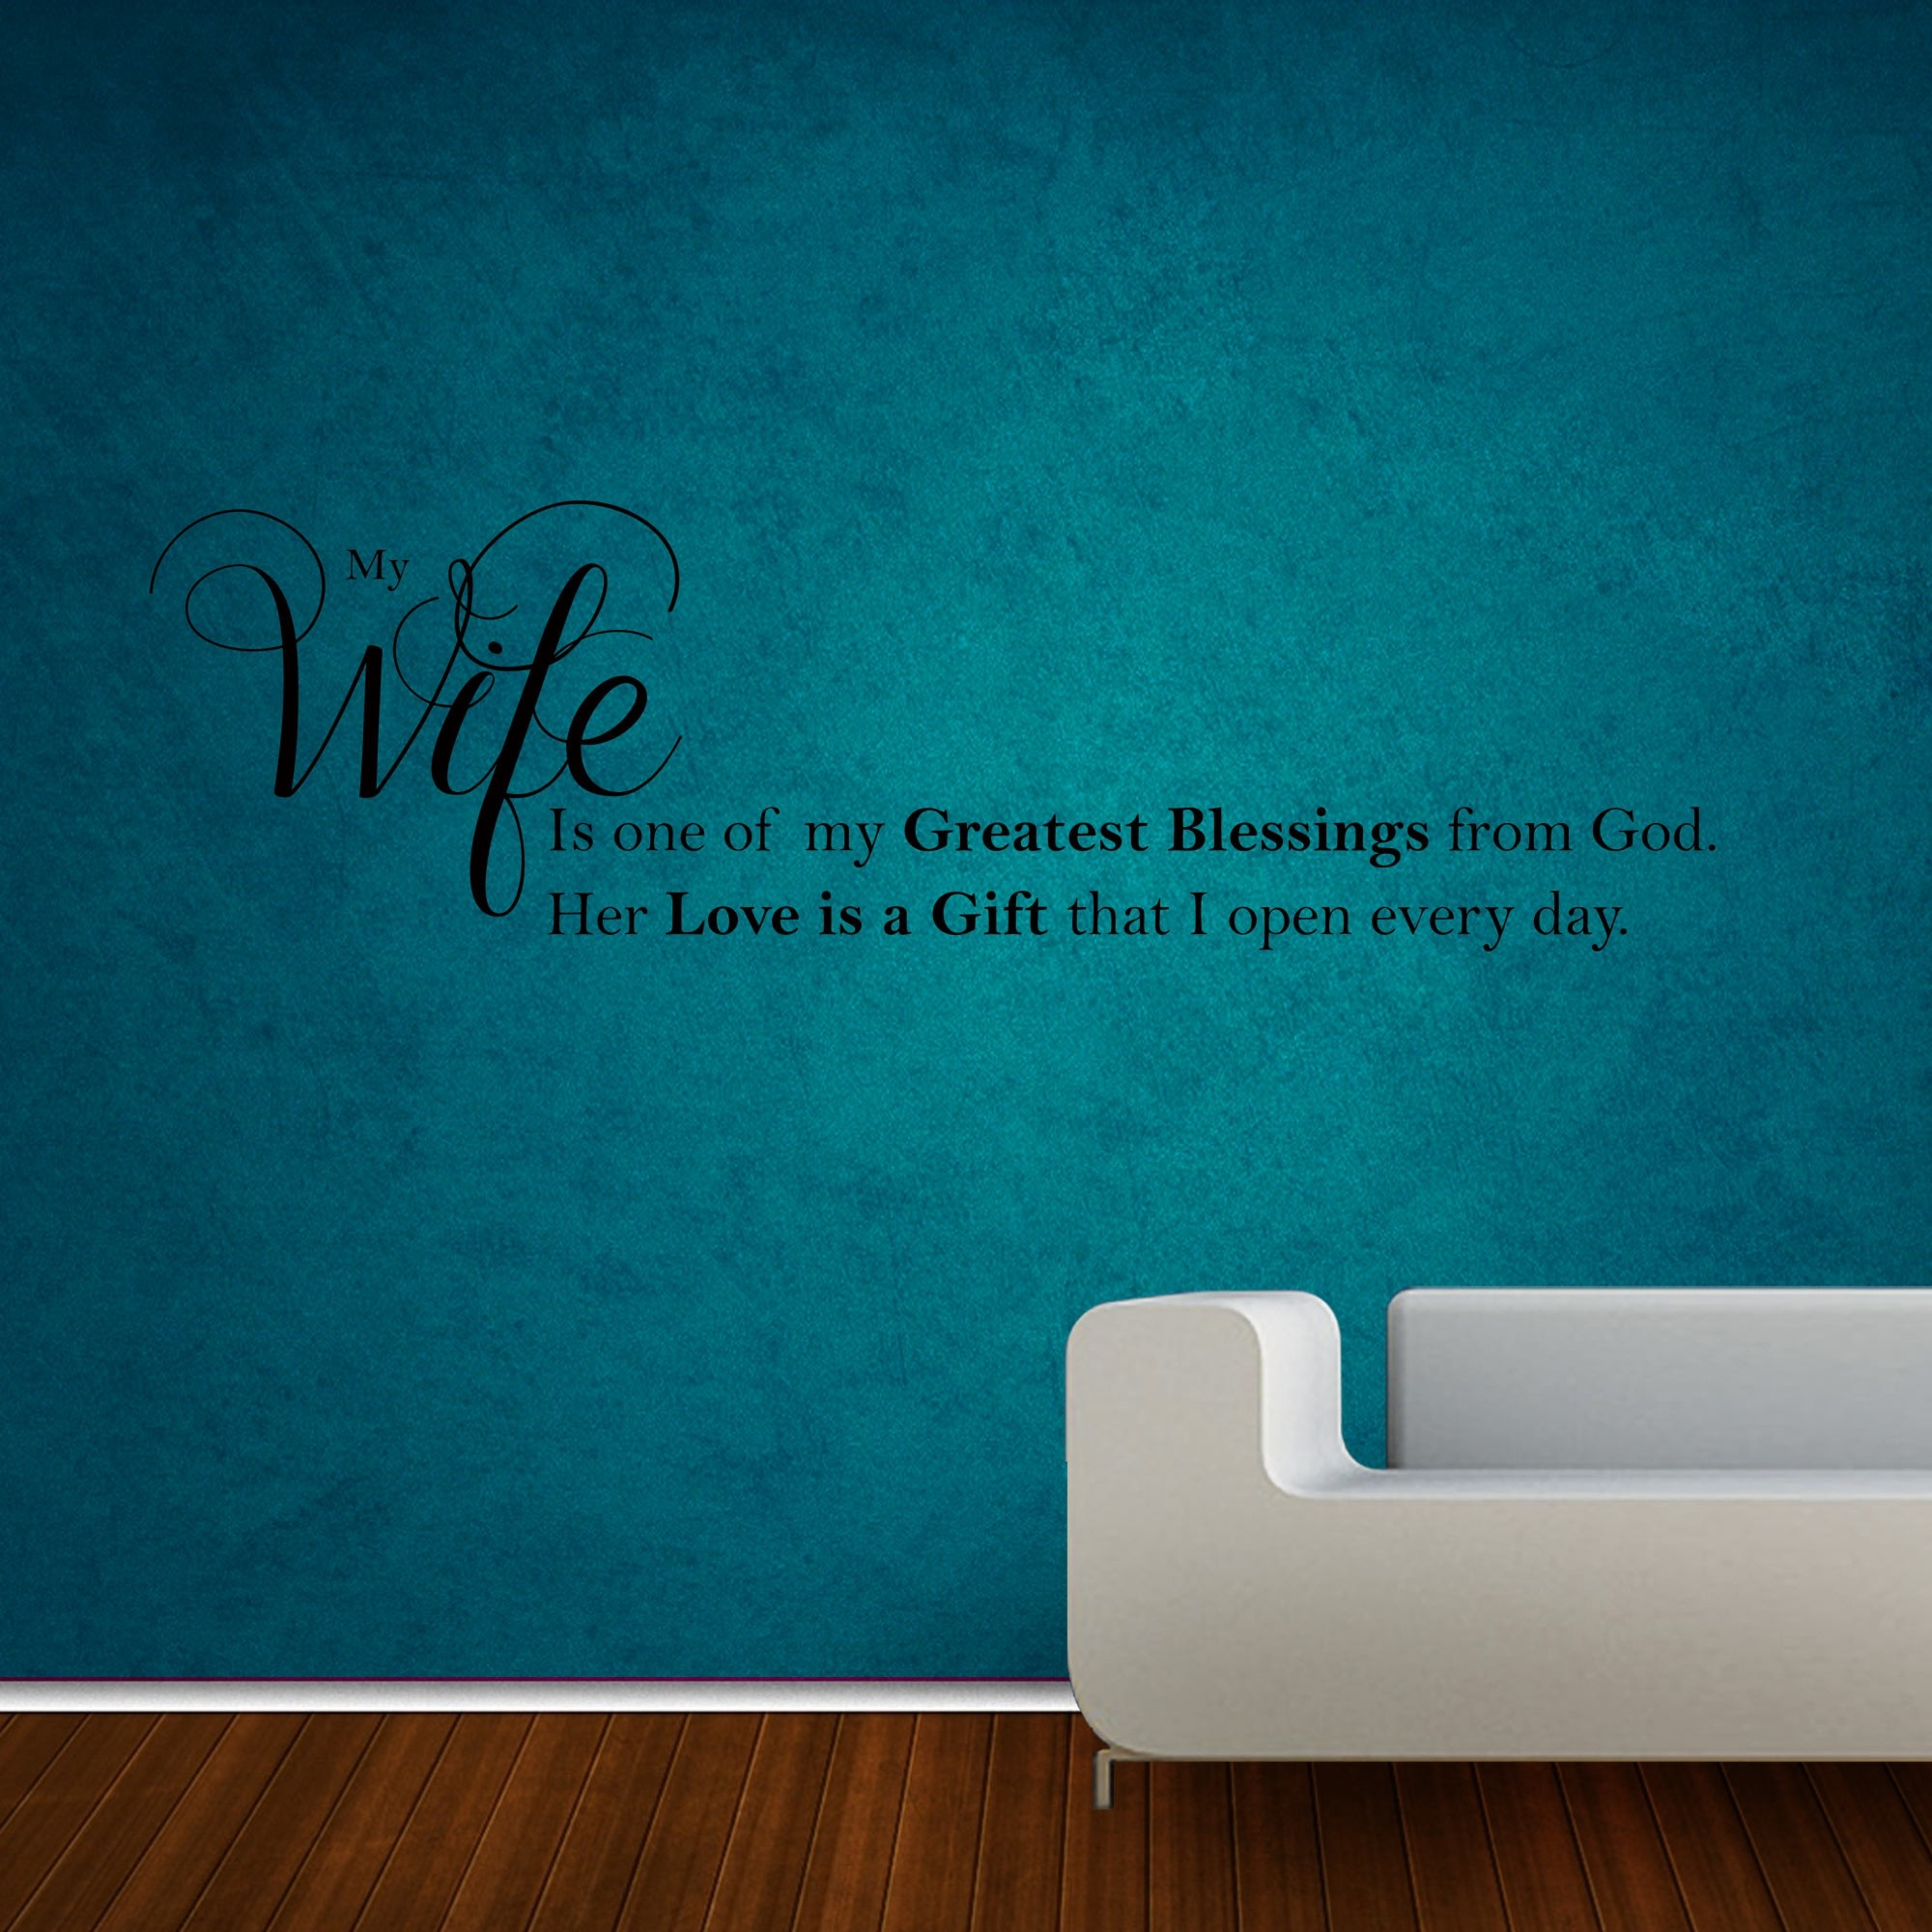 My Wife Wall Sticker Decal-Small-Black